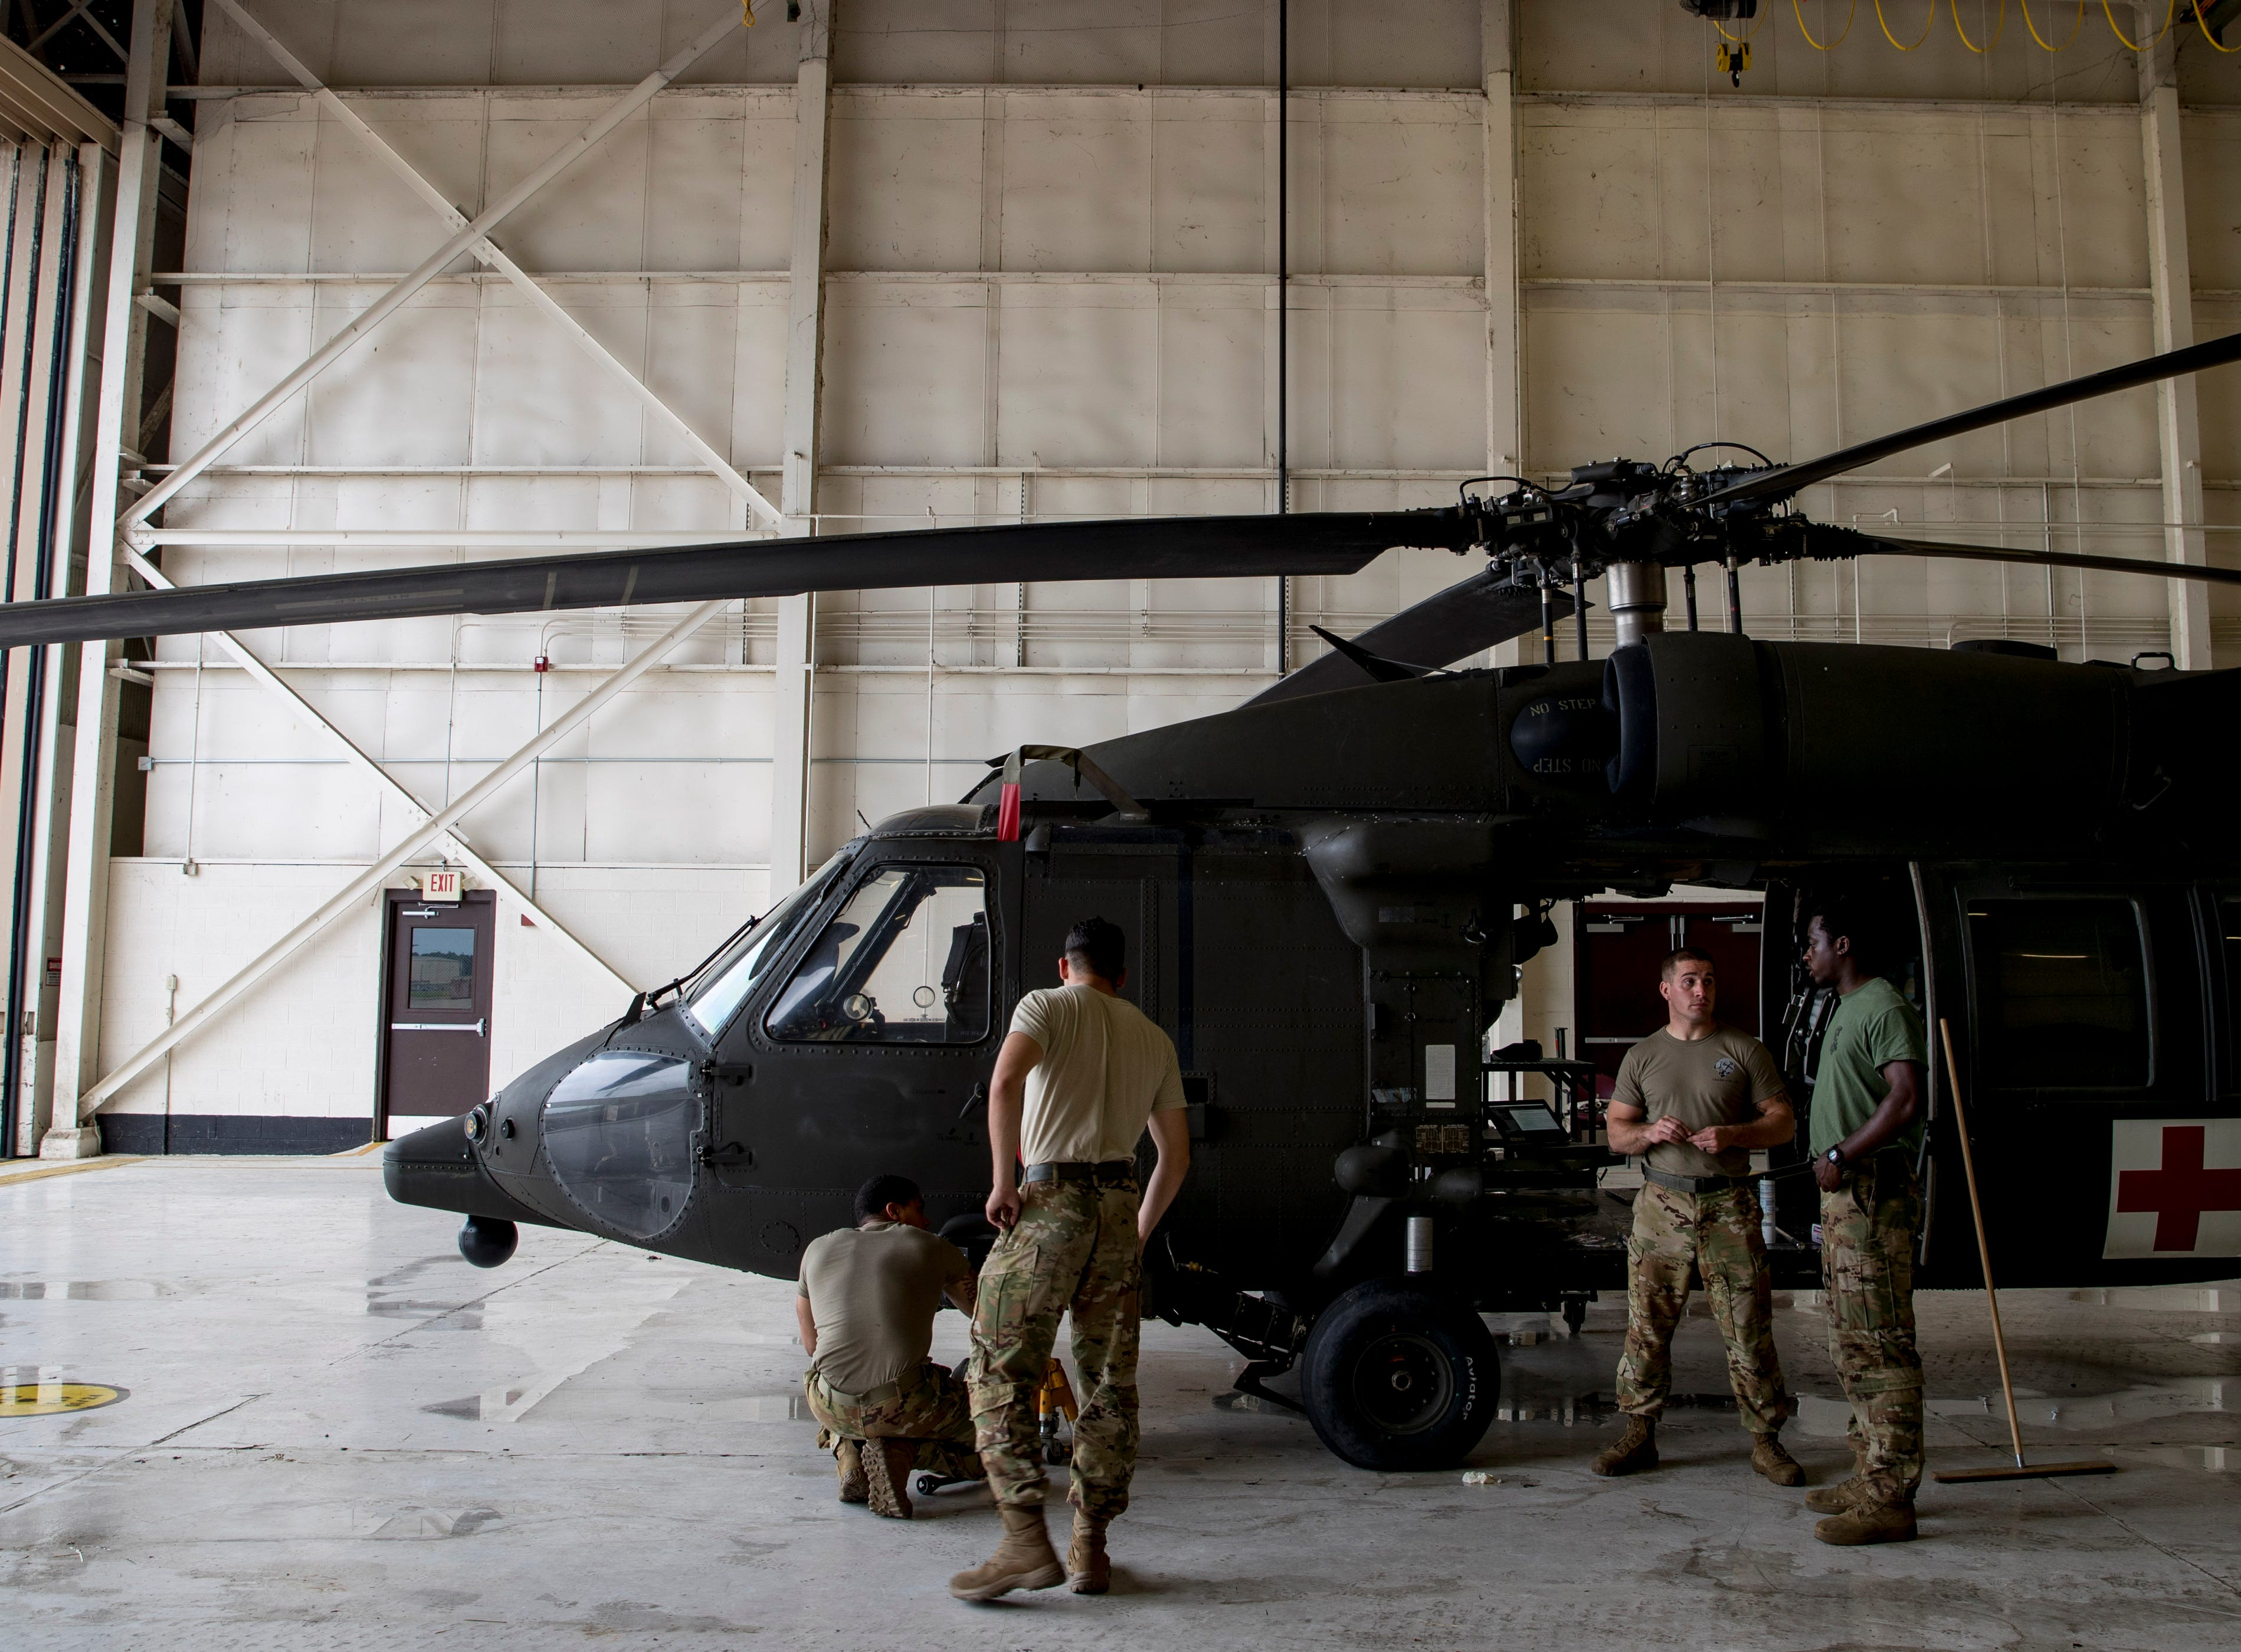 Sgt. Emmanuel Bynum, right, speaks with other soldiers maintaining a Black Hawk helicopter at Campbell Army Airfield in Fort Campbell, KY., on Wednesday, May 1, 2019.